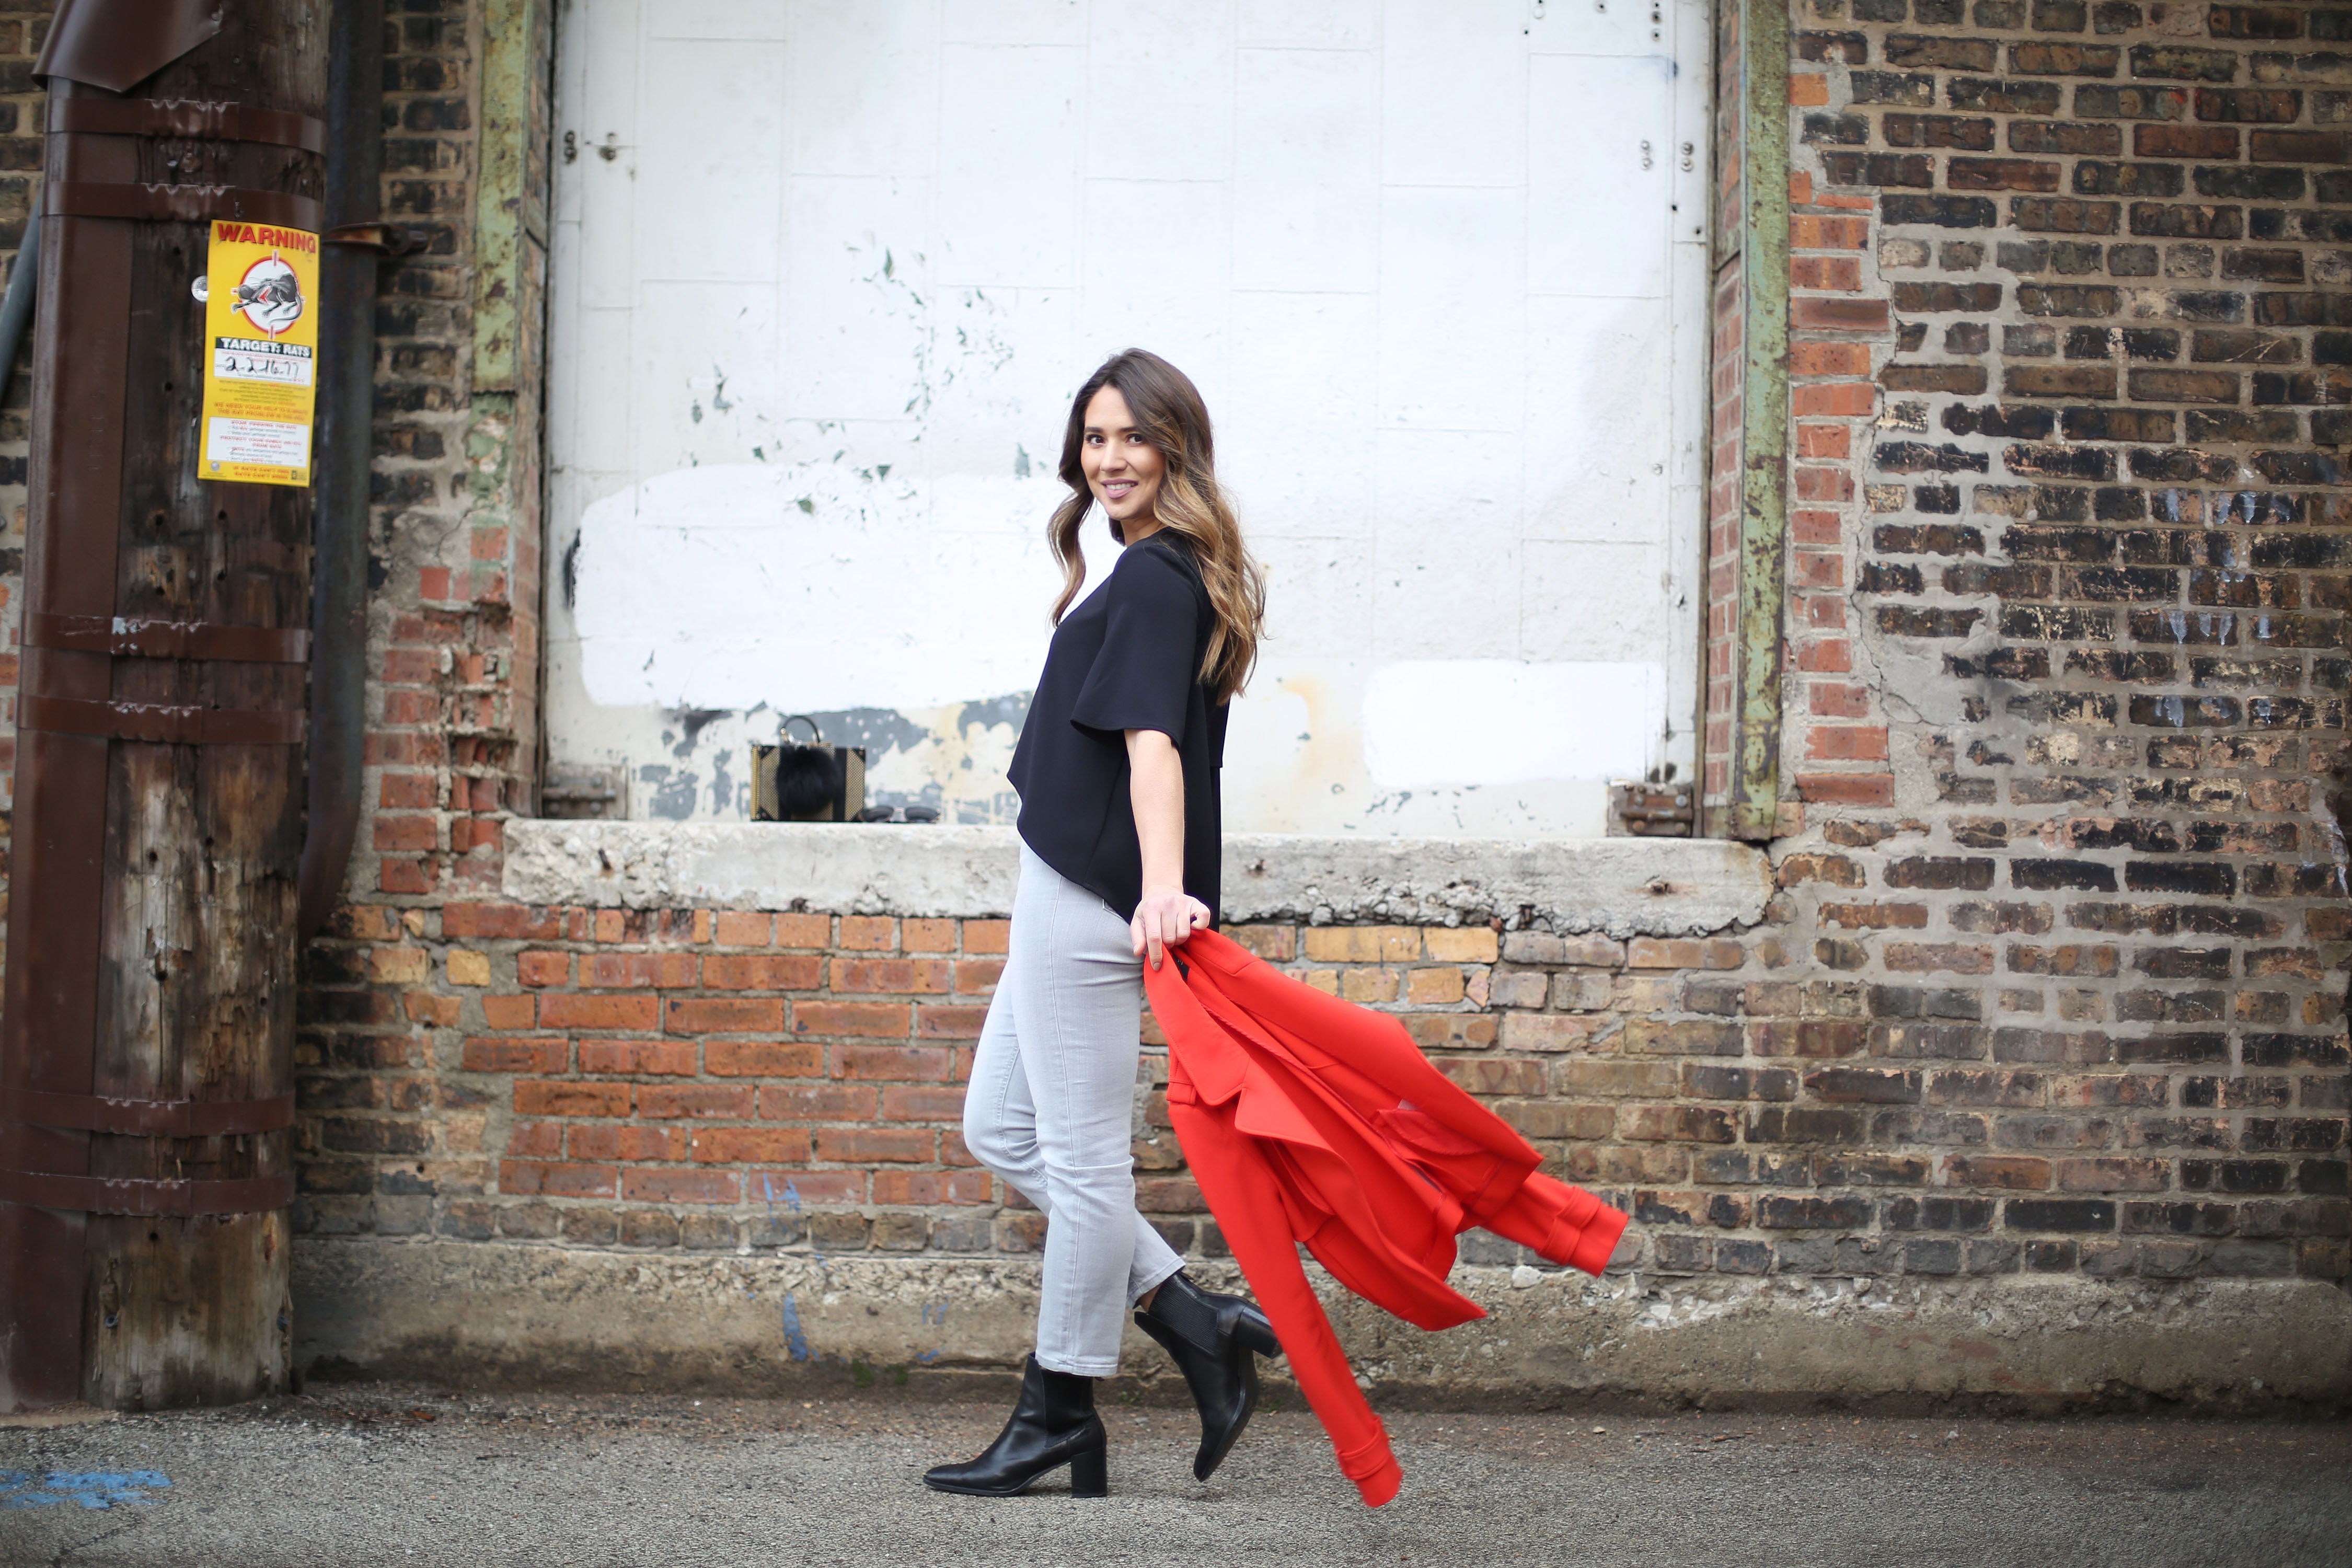 cool-girl-chic-outfit-neutral-pop-of-red